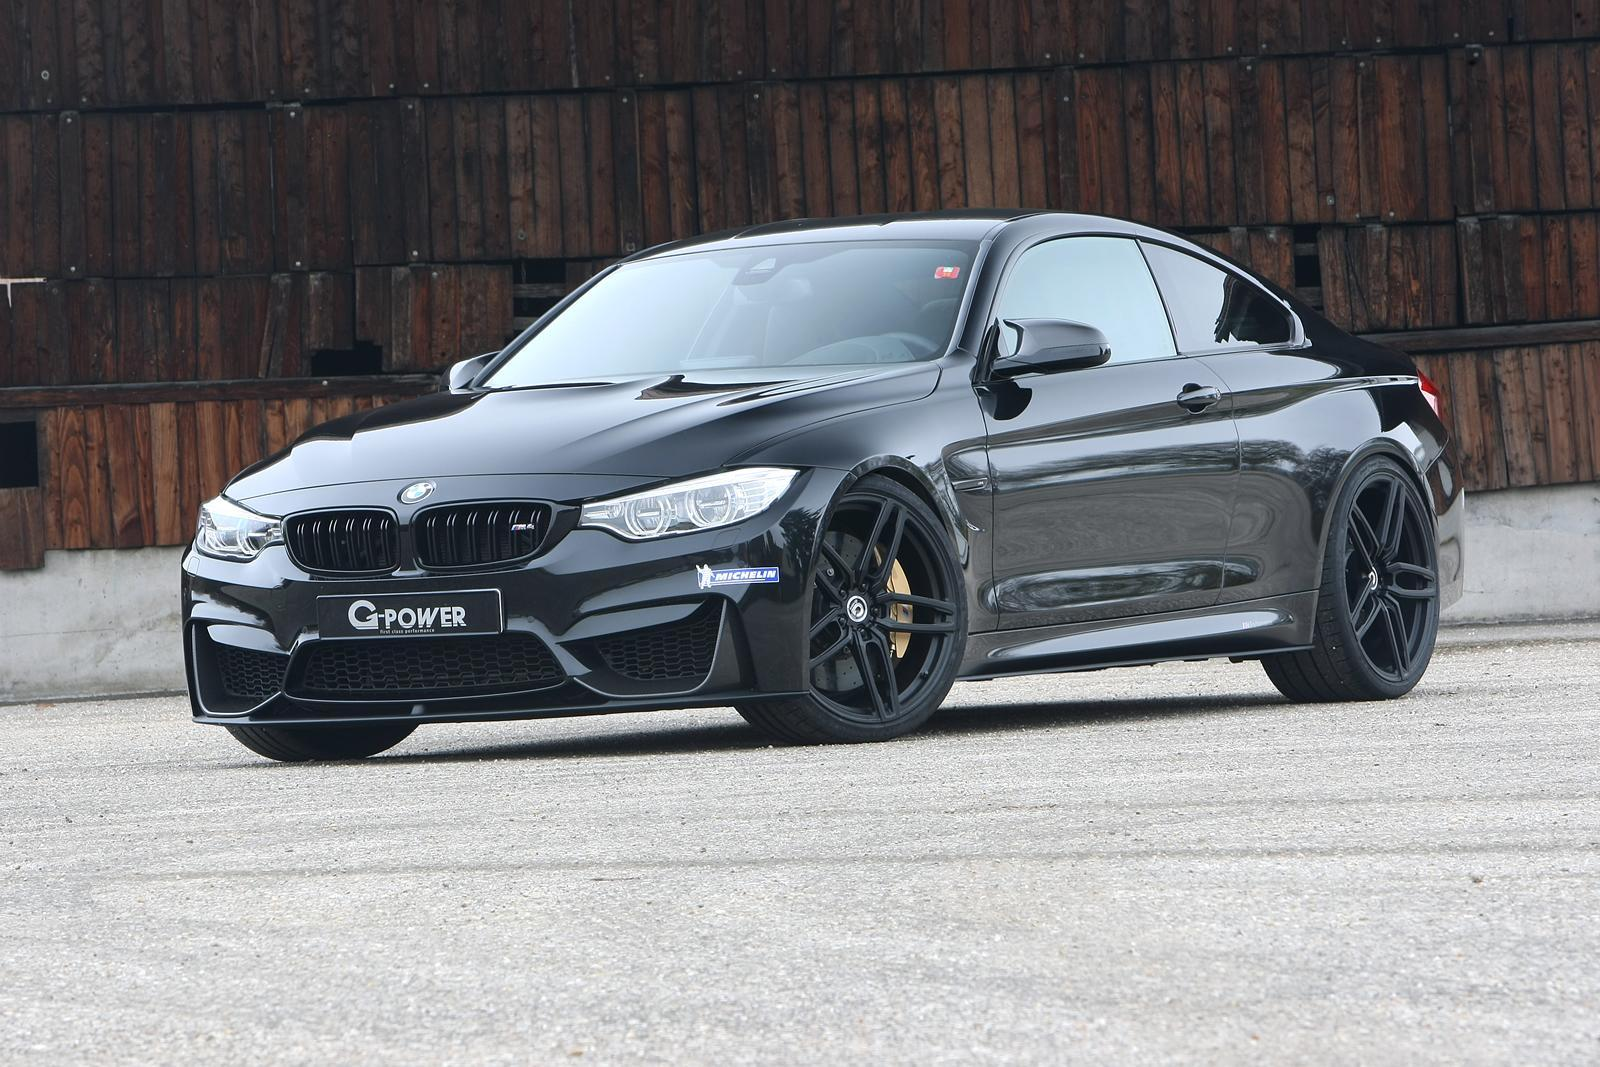 G-Power bmw M3 y bmw M4